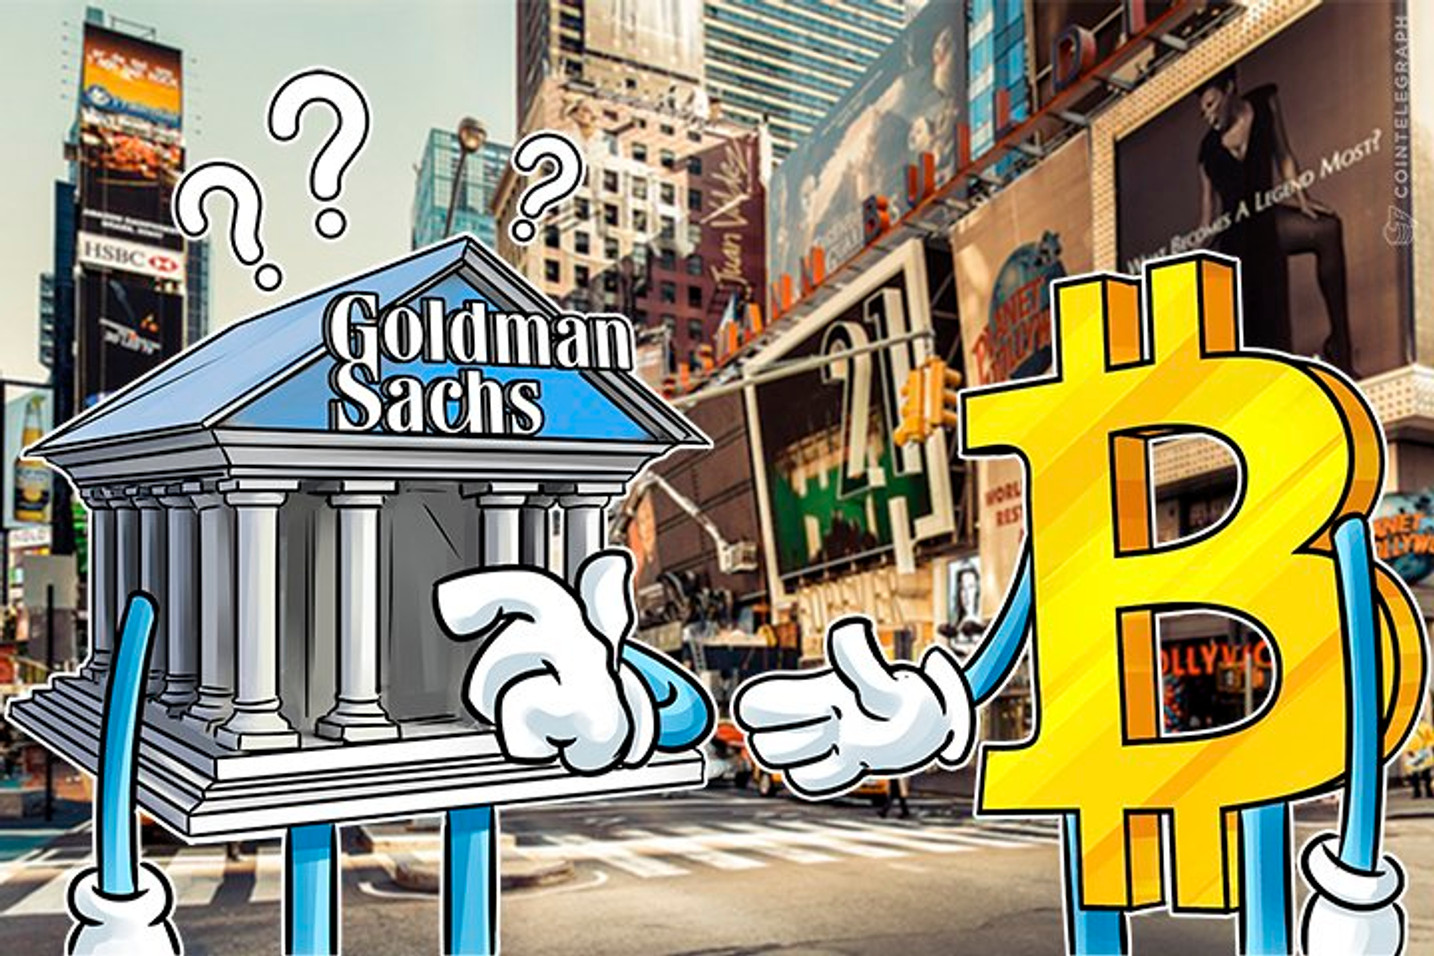 Goldman Sachs: Not Trading Bitcoin Yet, But Still Interested